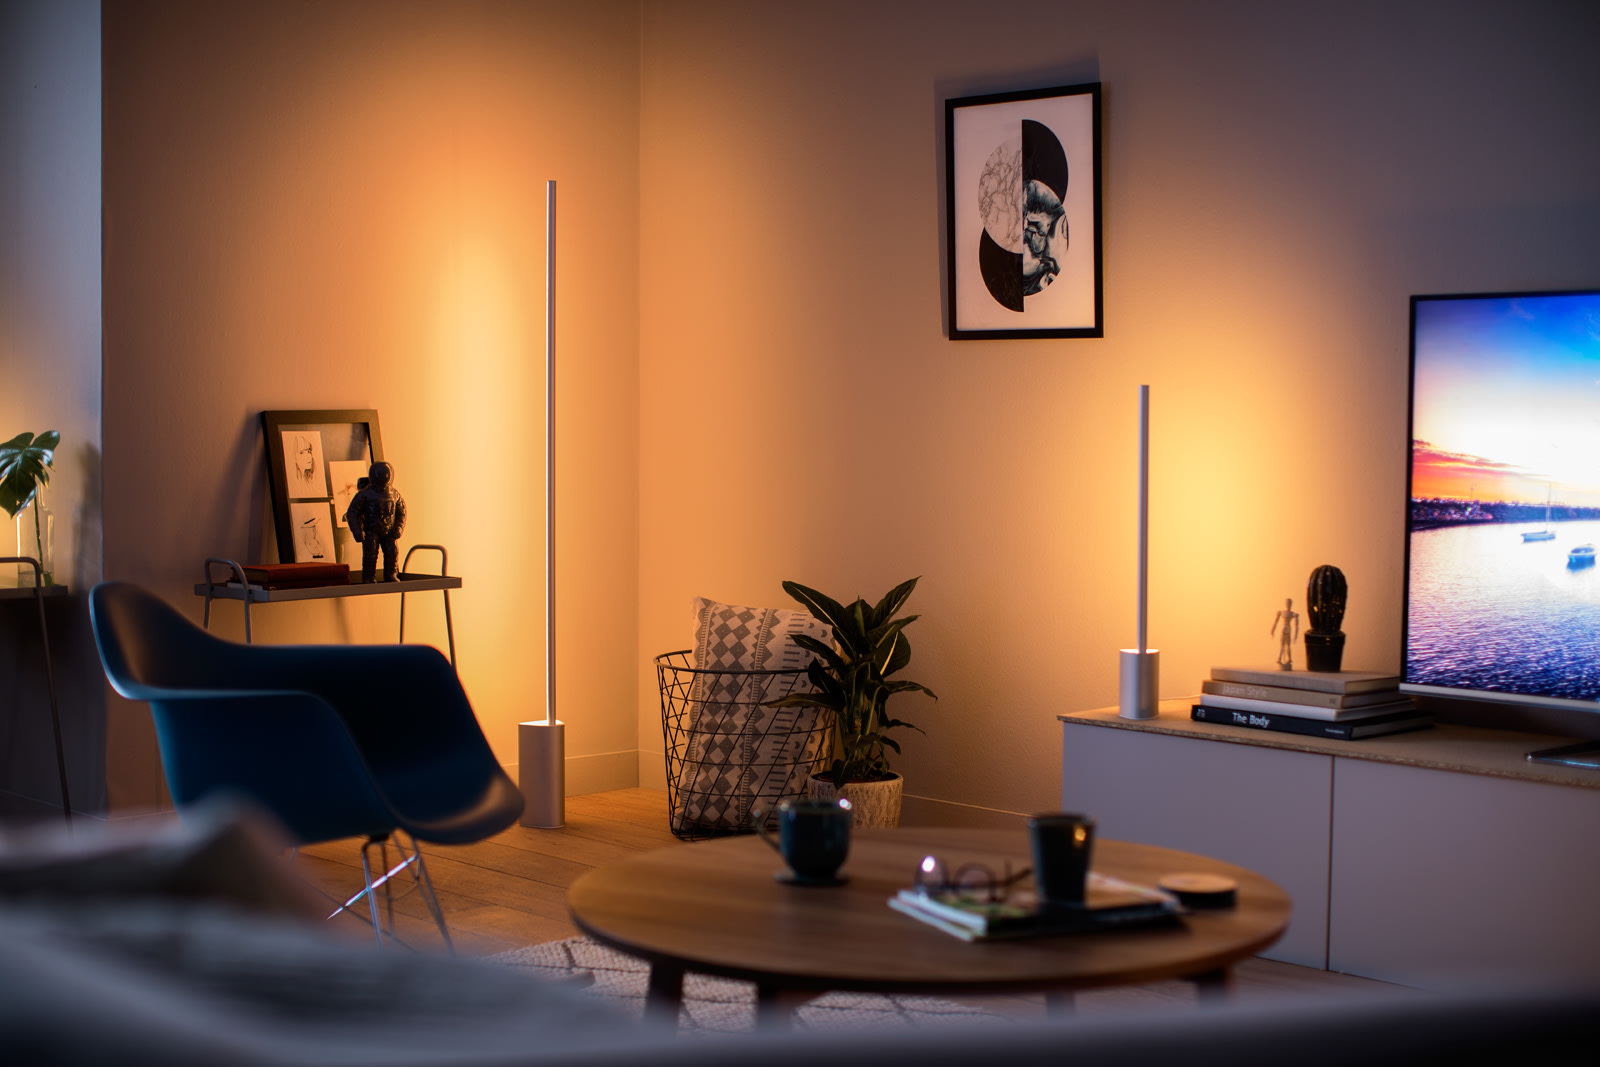 The Latest Philips Hue Lighting Kits Bring Color To Your Walls